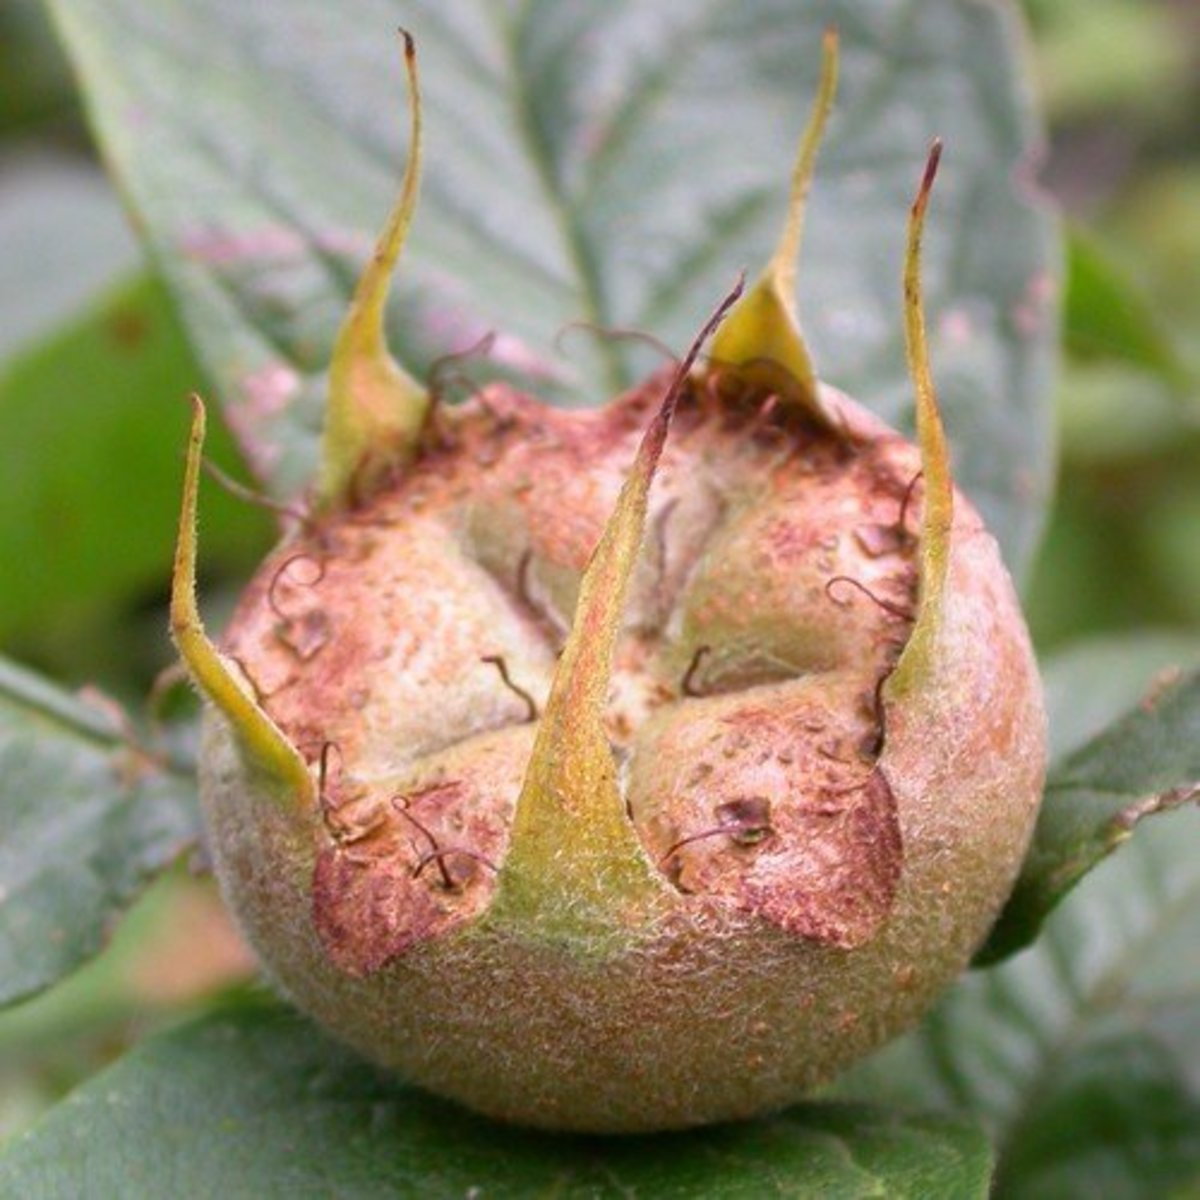 The medlar fruit displaying the characteristic that has led to its colloquial name.